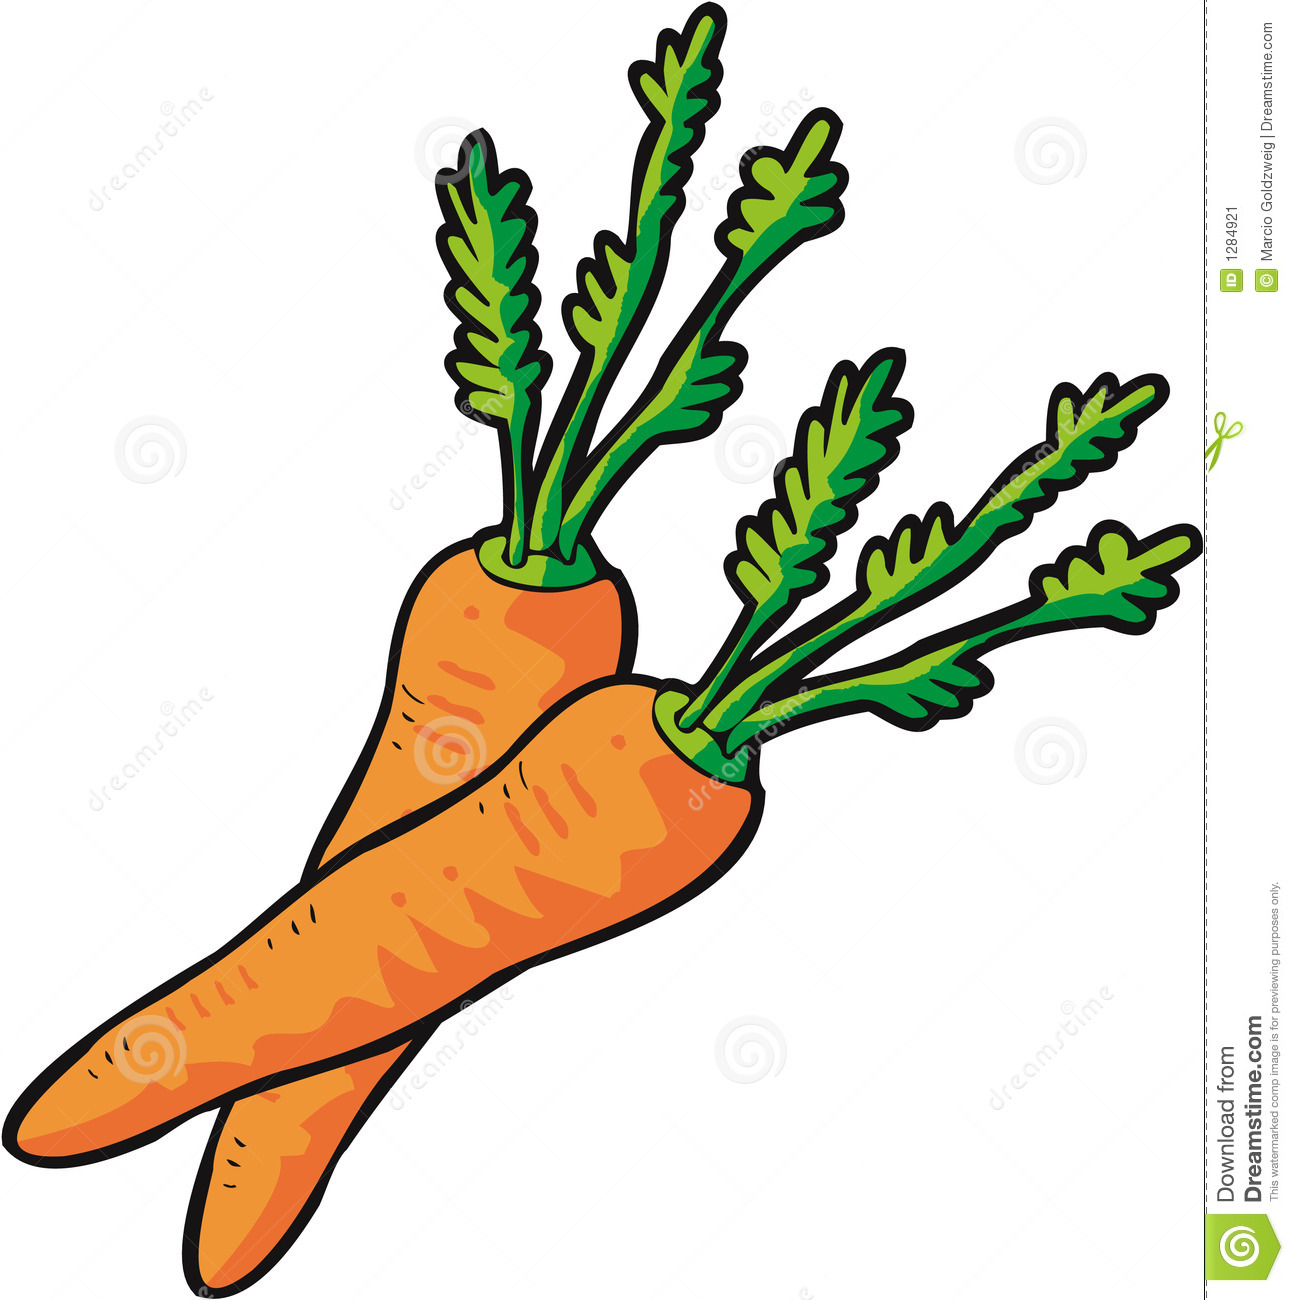 vector carrots stock vector illustration of drawing carrots 1284921 rh dreamstime com carrot clip art free carrot clip art black and white